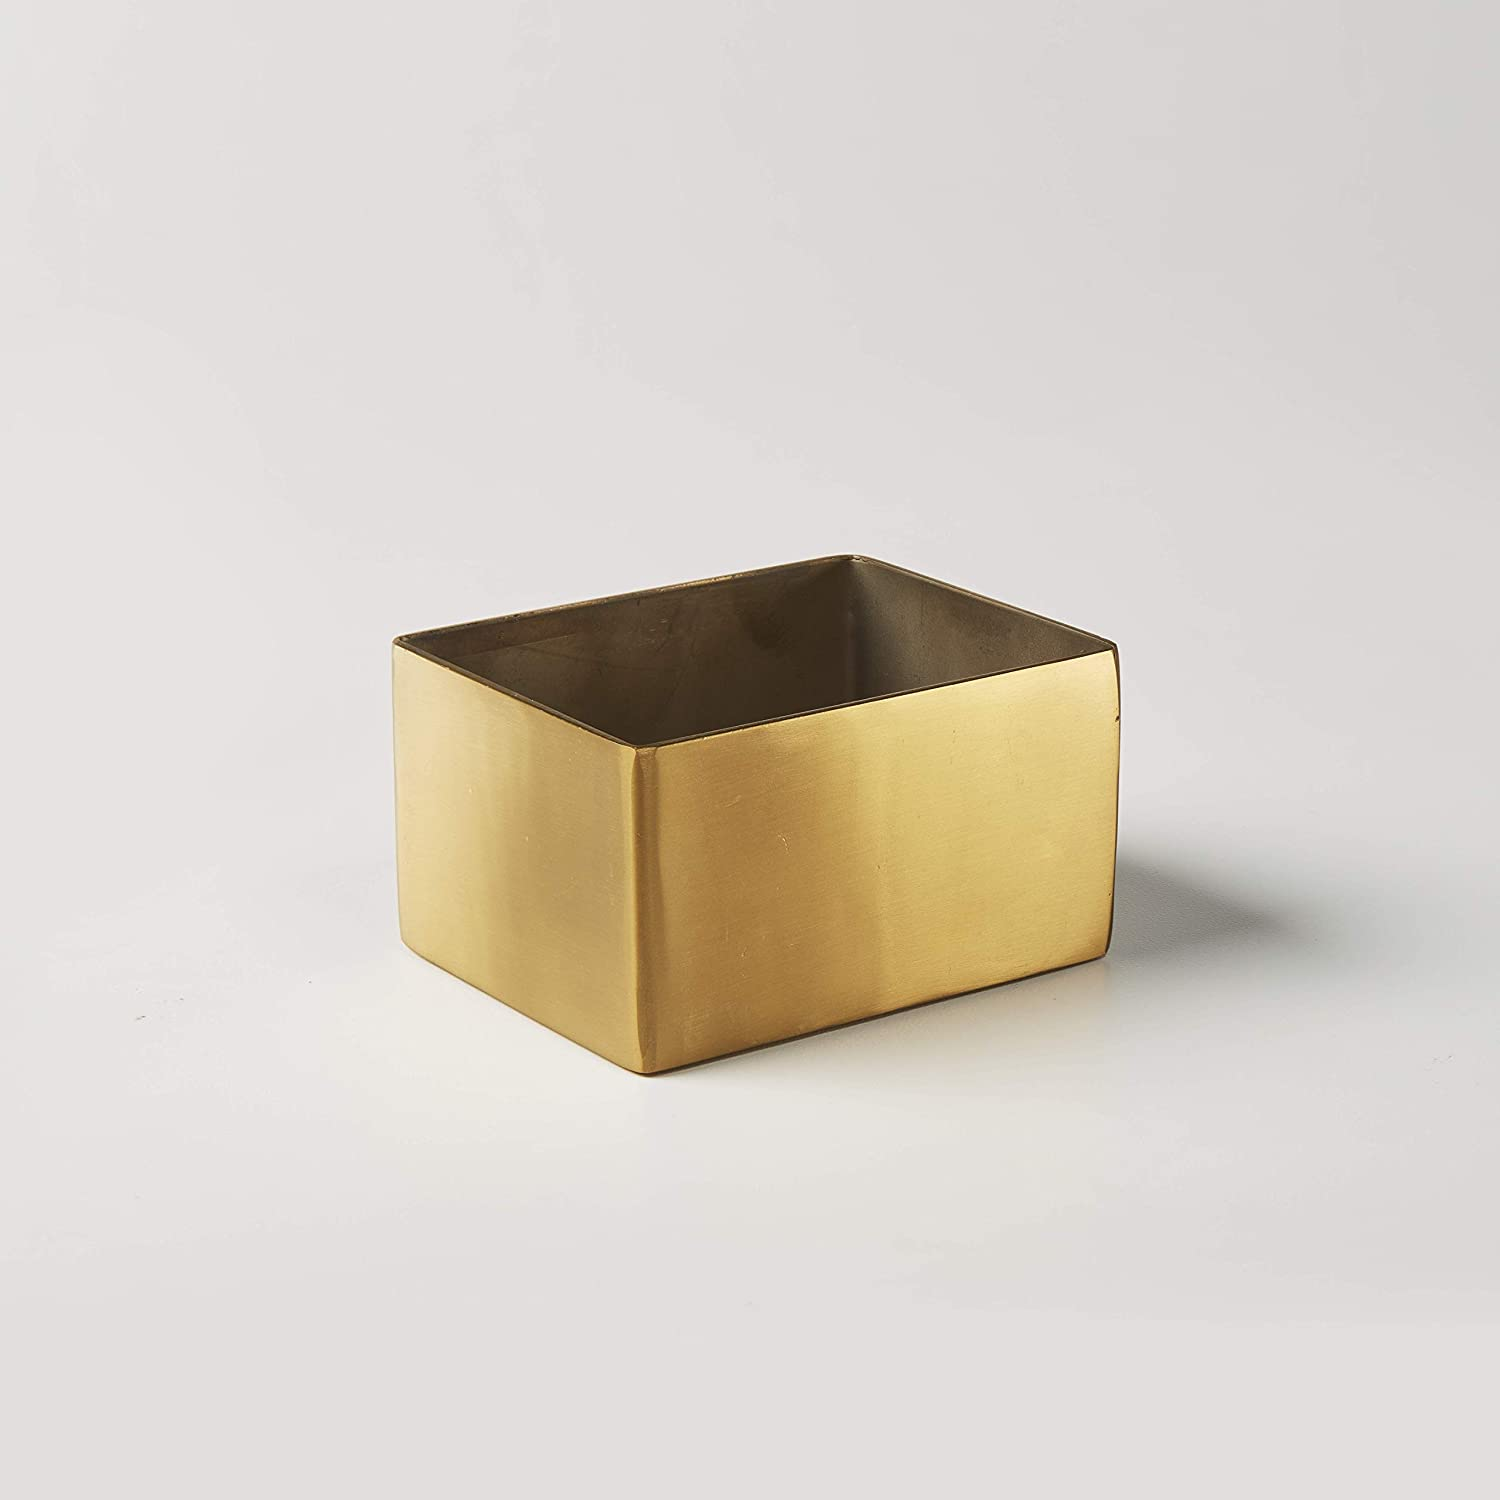 Satin Finish American Metalcraft GSPT5 Square Gold Sugar Packet Holder 2-Inches